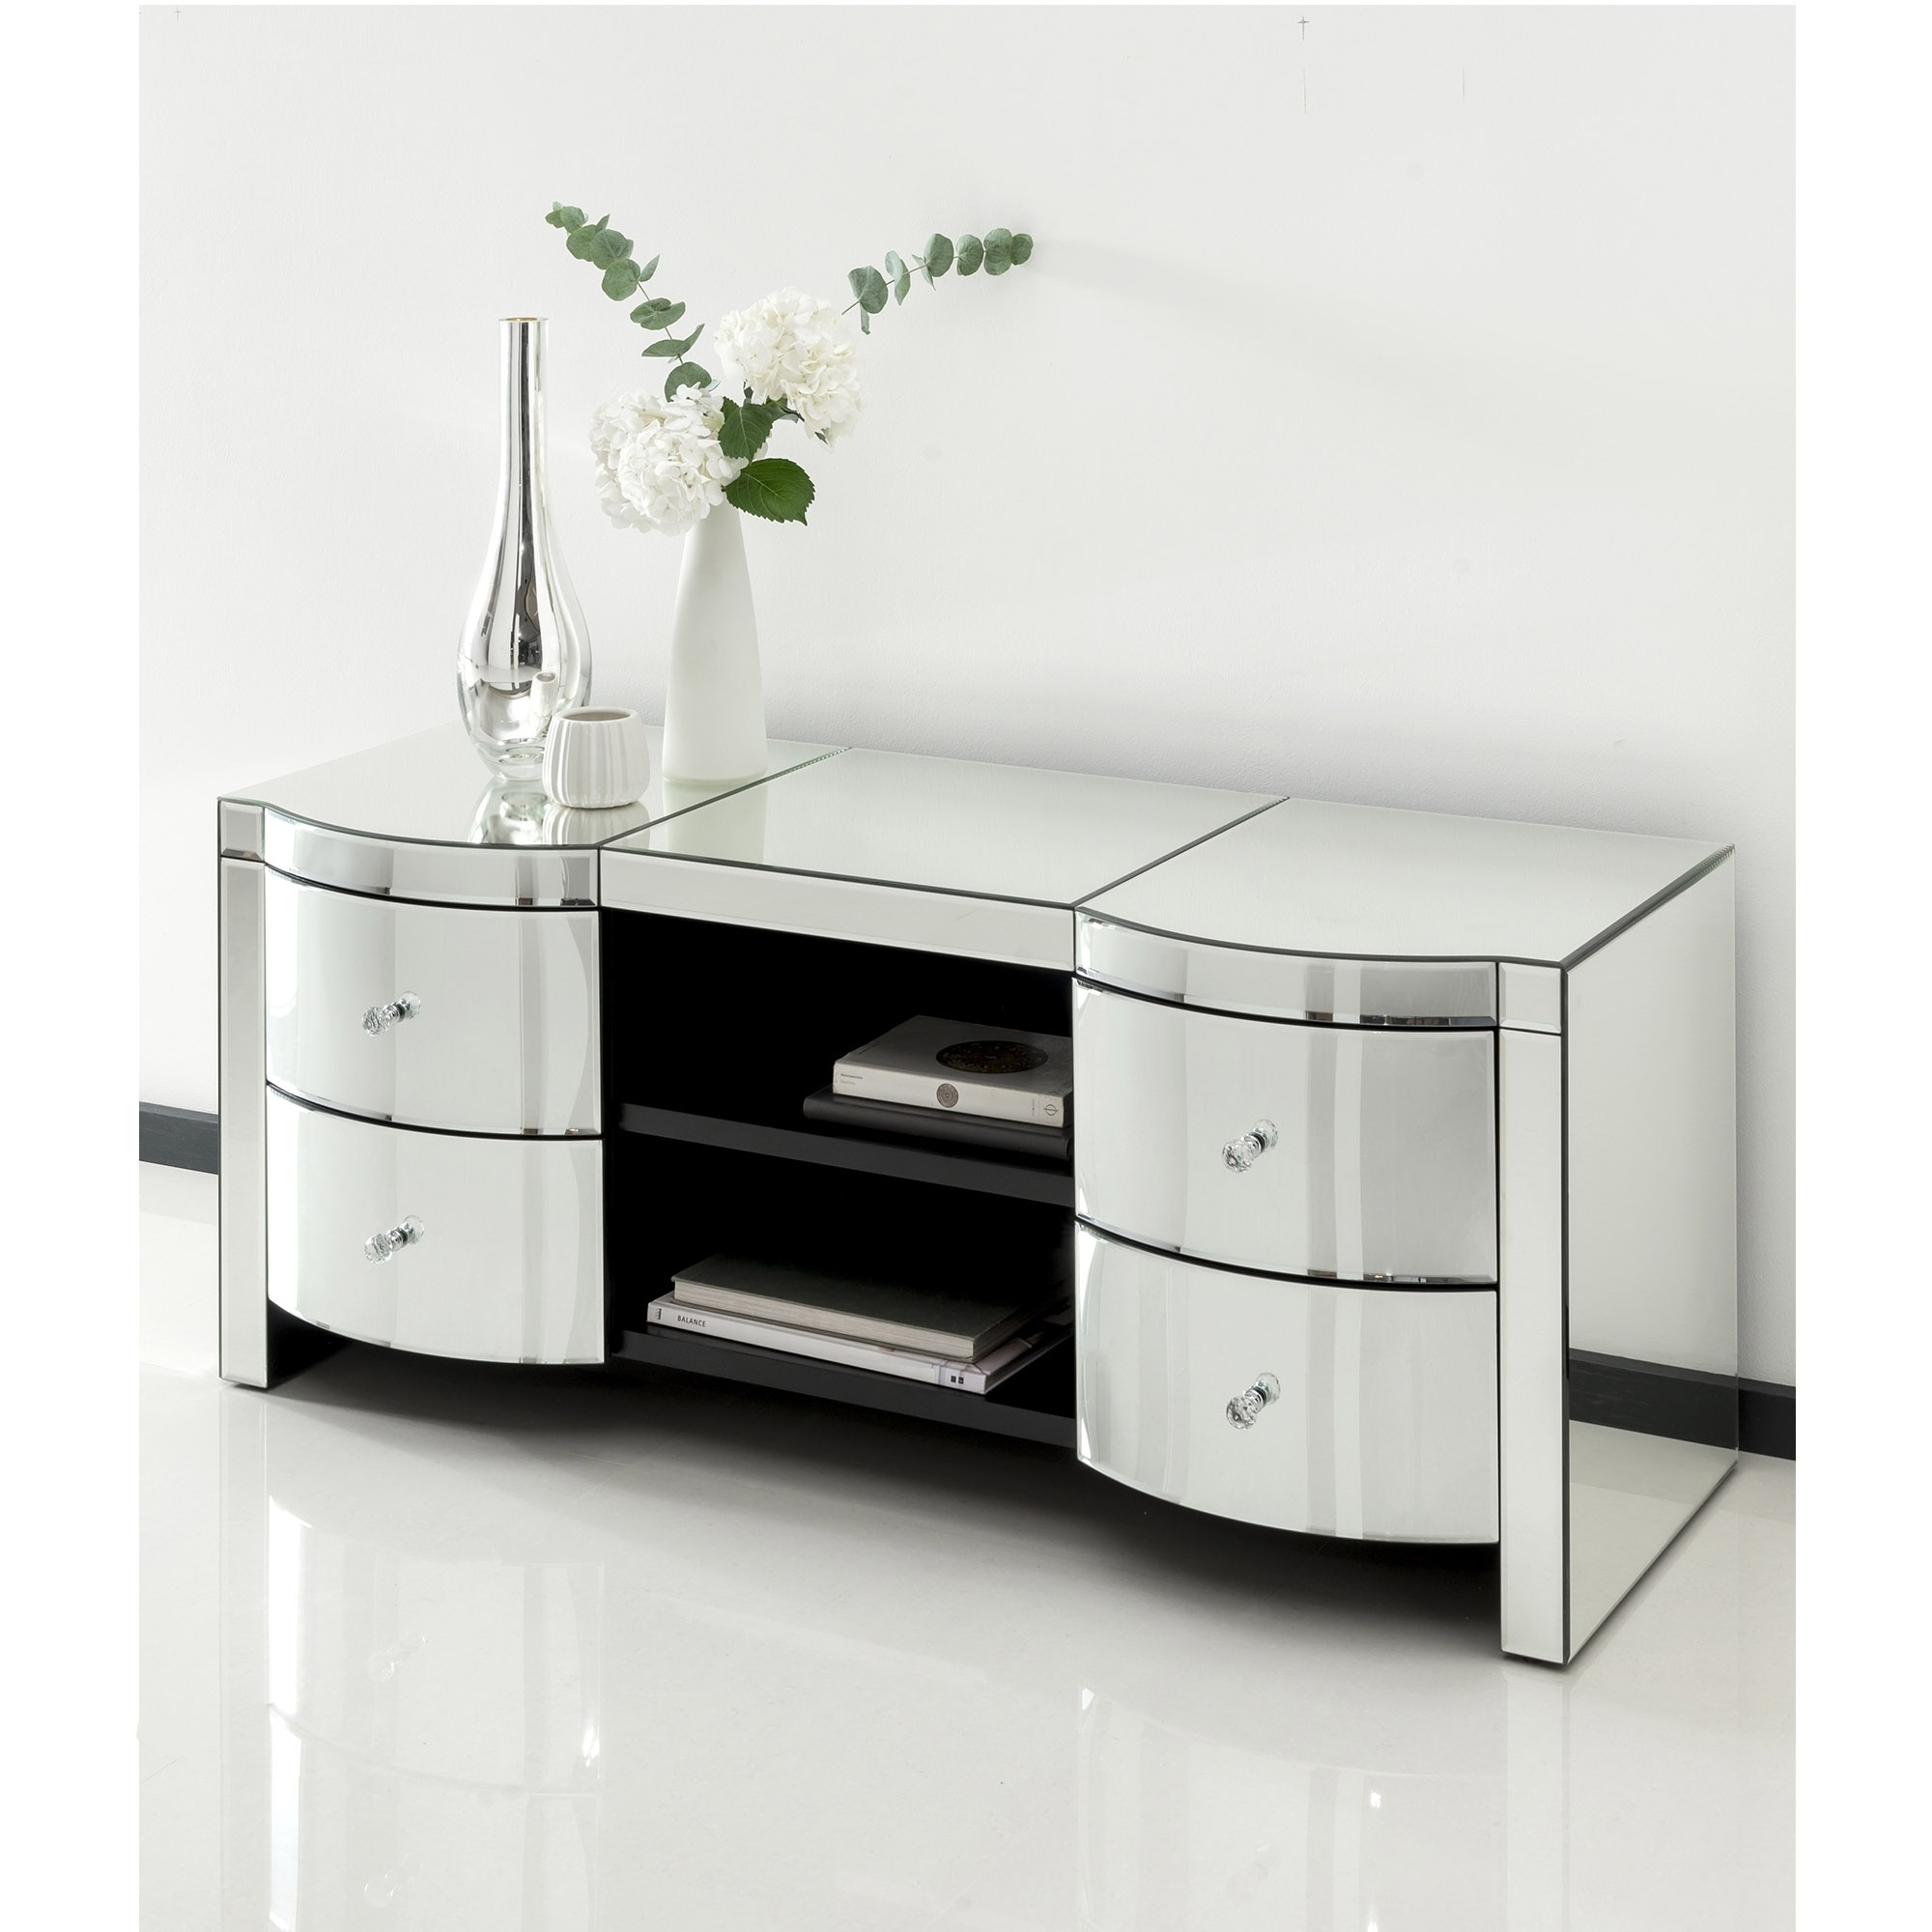 Venetian Mirrored Furniture Pertaining To Most Recently Released Mirrored Tv Cabinets Furniture (Gallery 1 of 20)